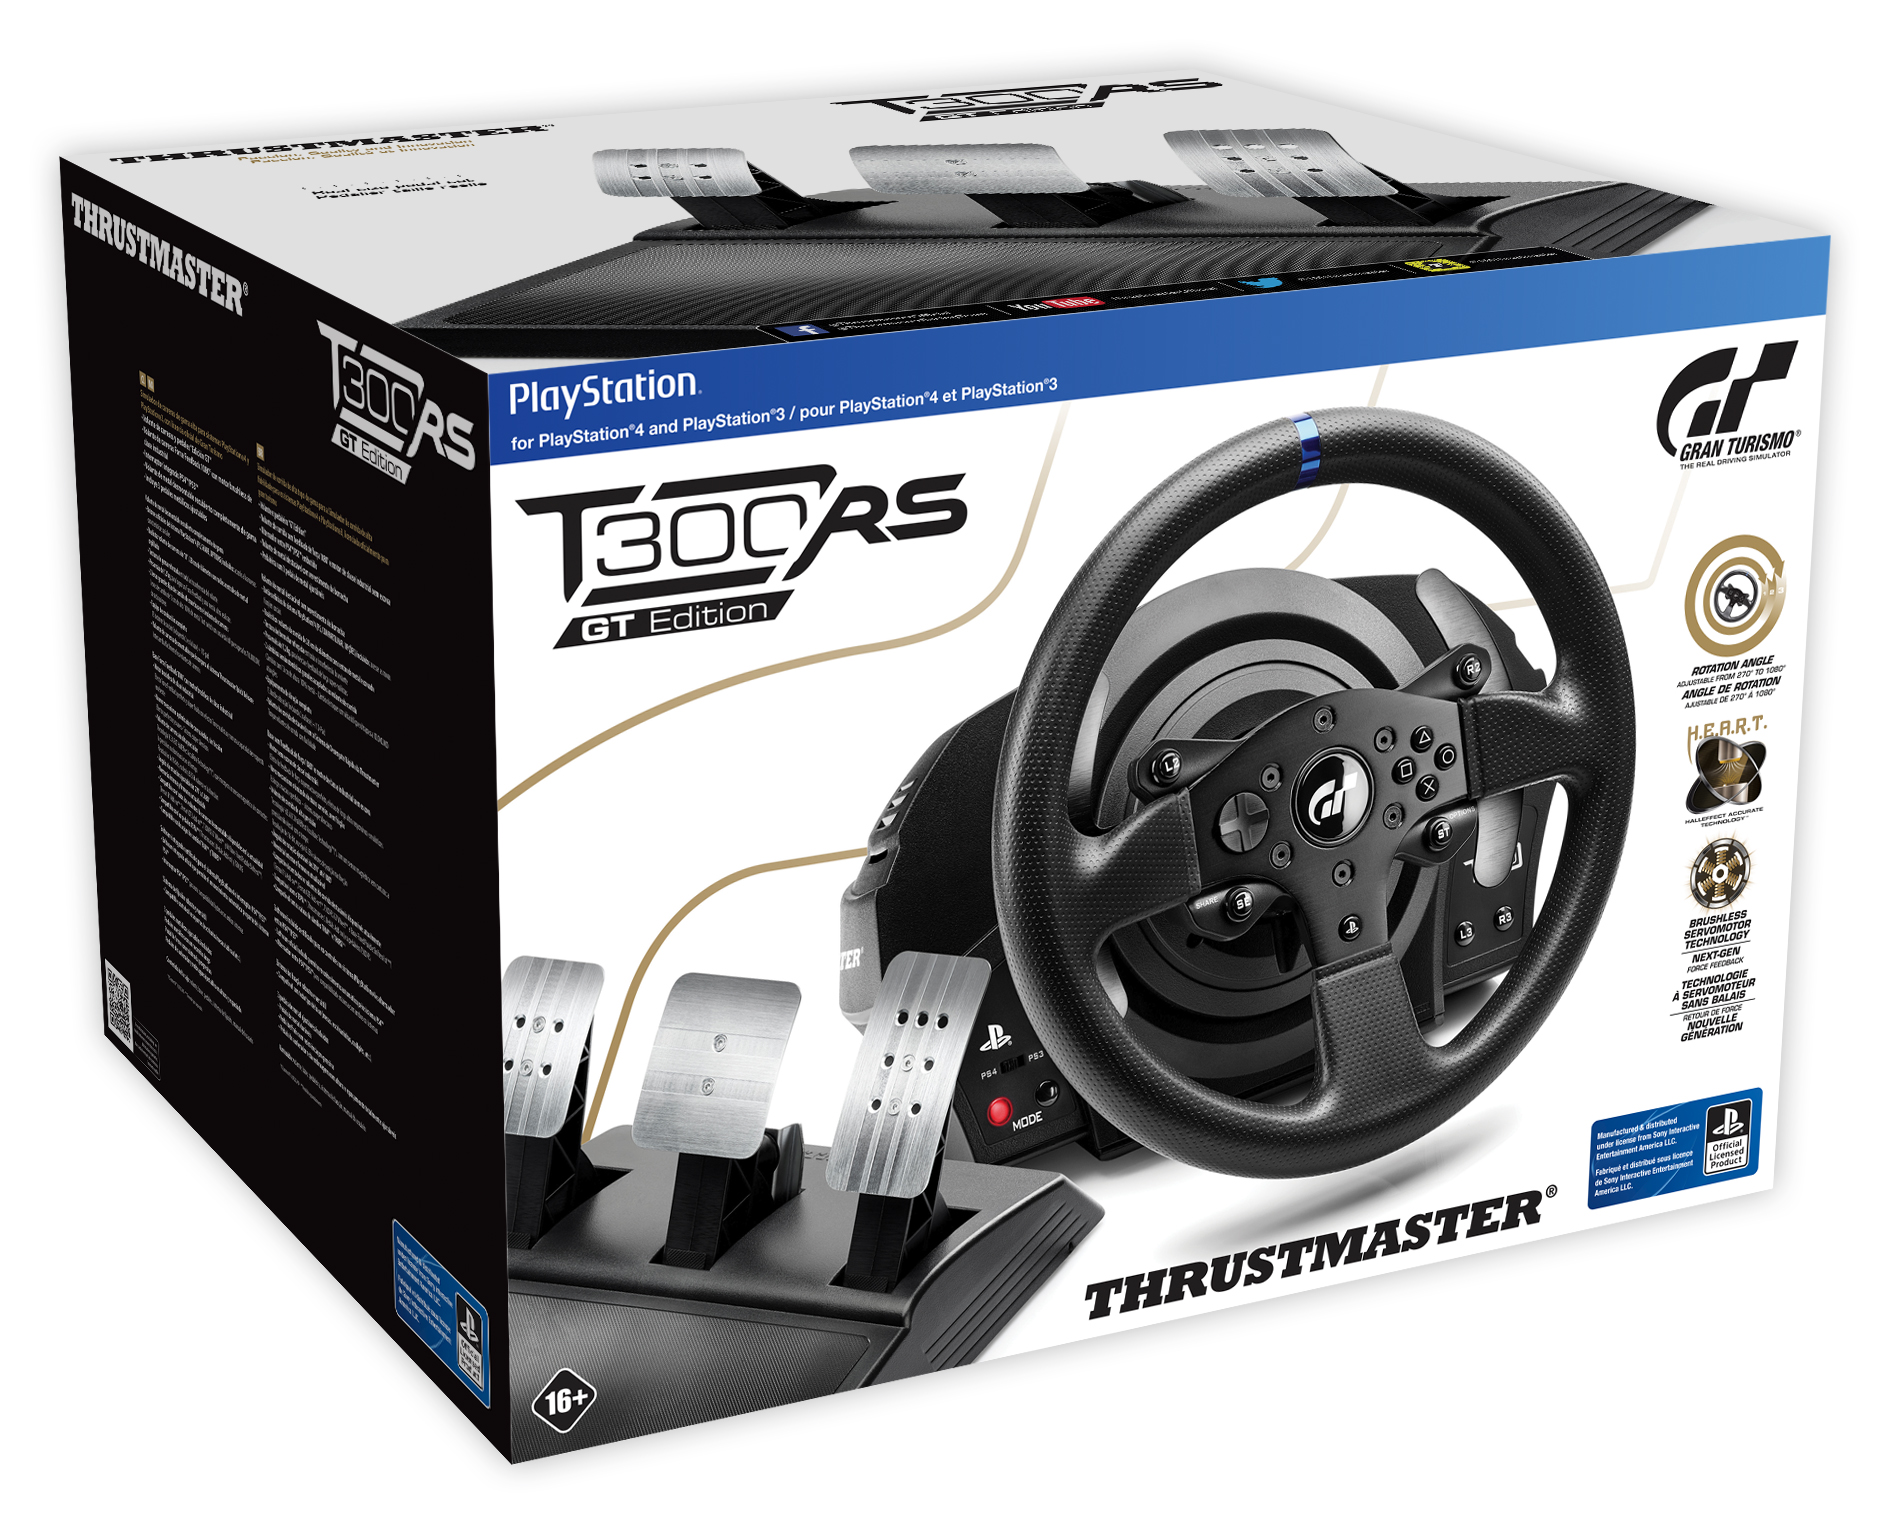 thrustmaster unveils new t300rs gt edition racing wheel for ps4 ps3 terminal gamer gaming is. Black Bedroom Furniture Sets. Home Design Ideas